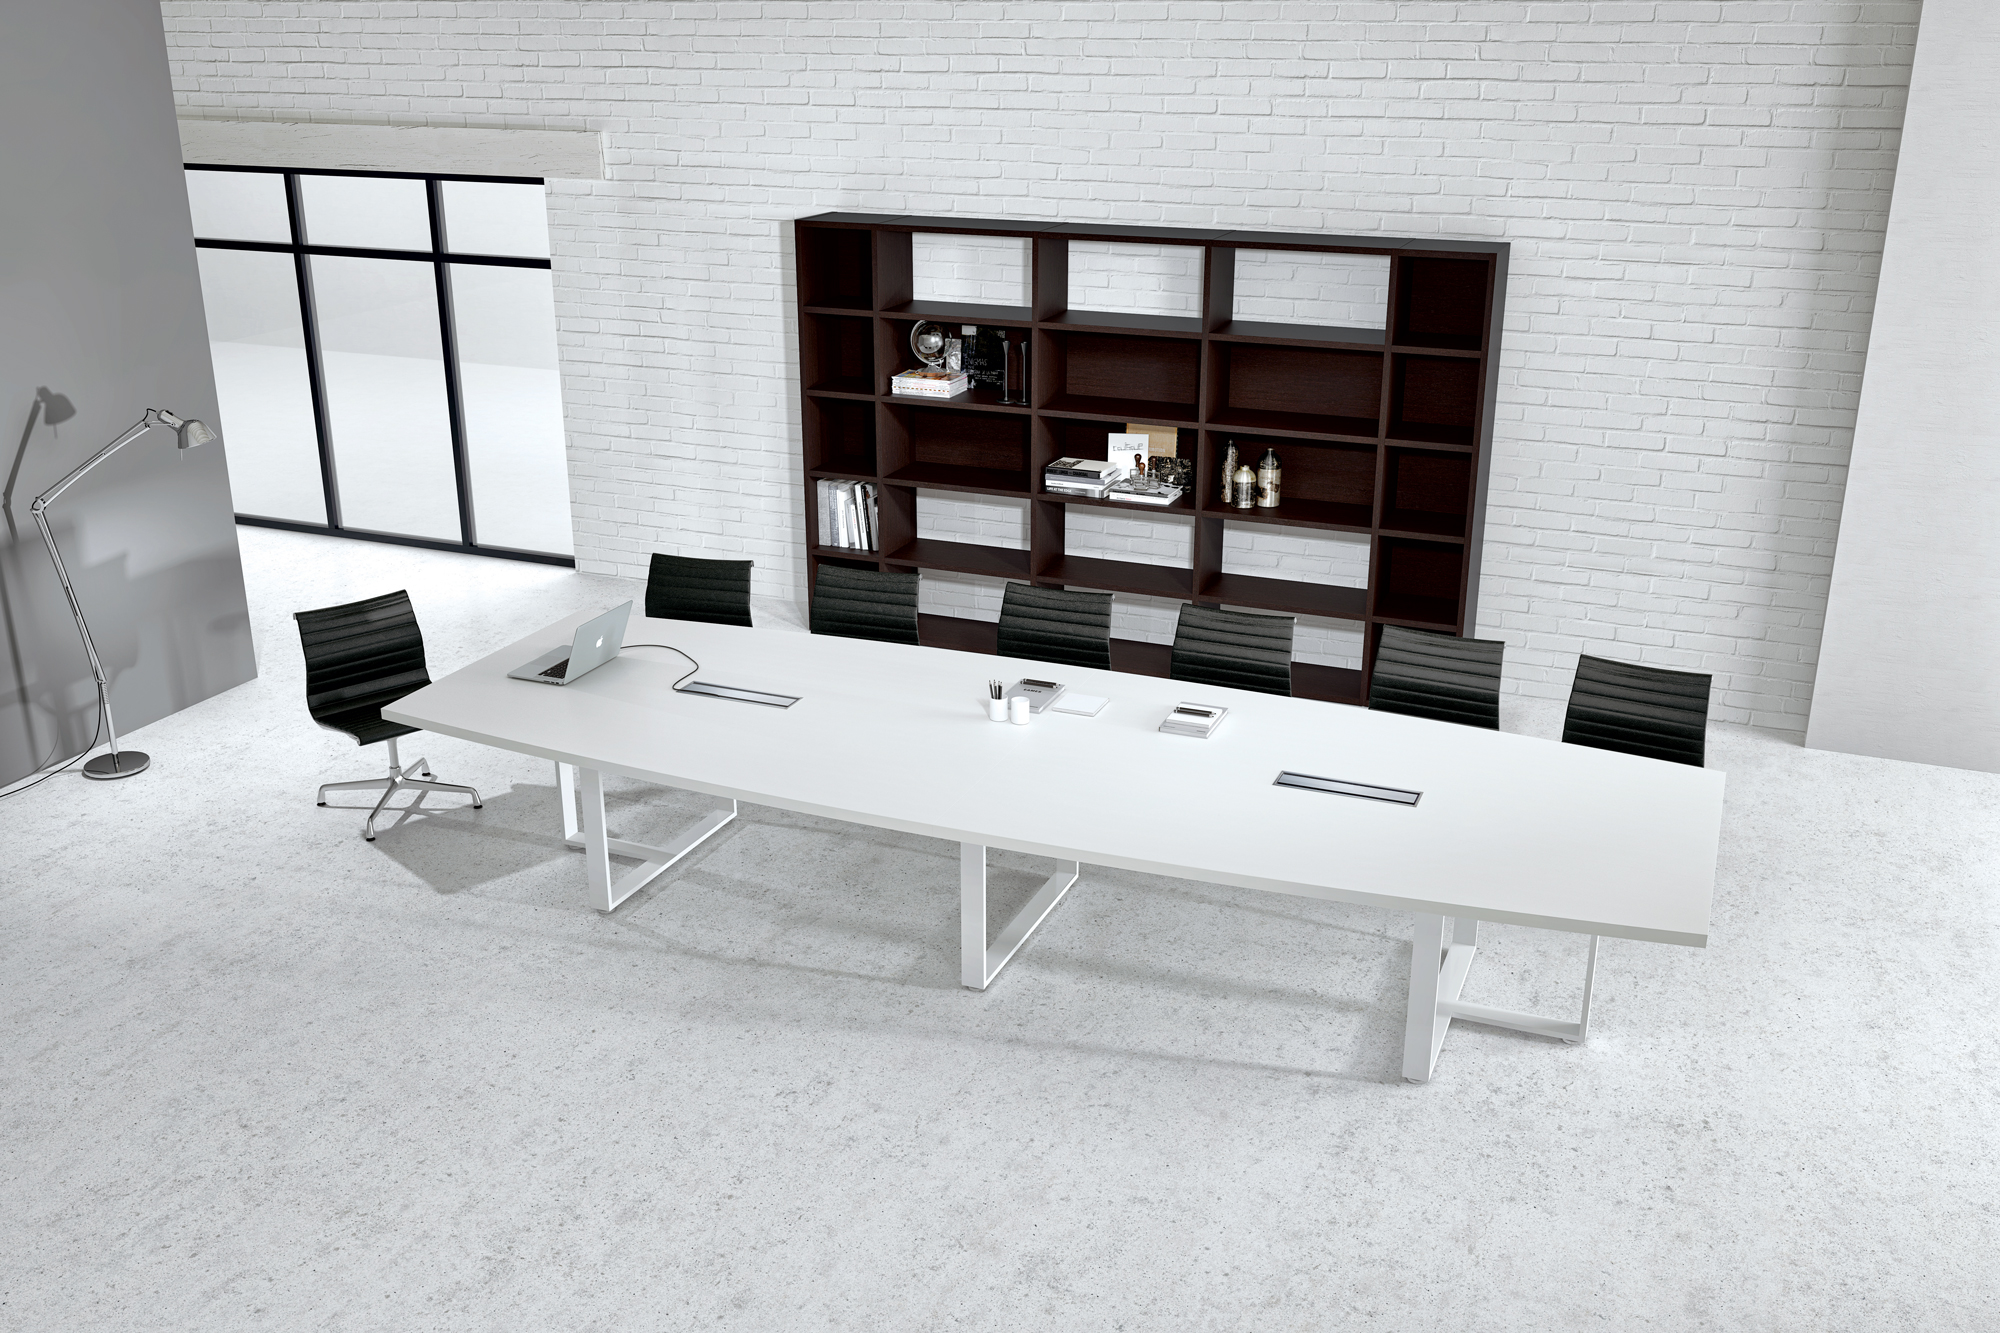 Large White Contemporary Boat Conference Table Ambience Dor